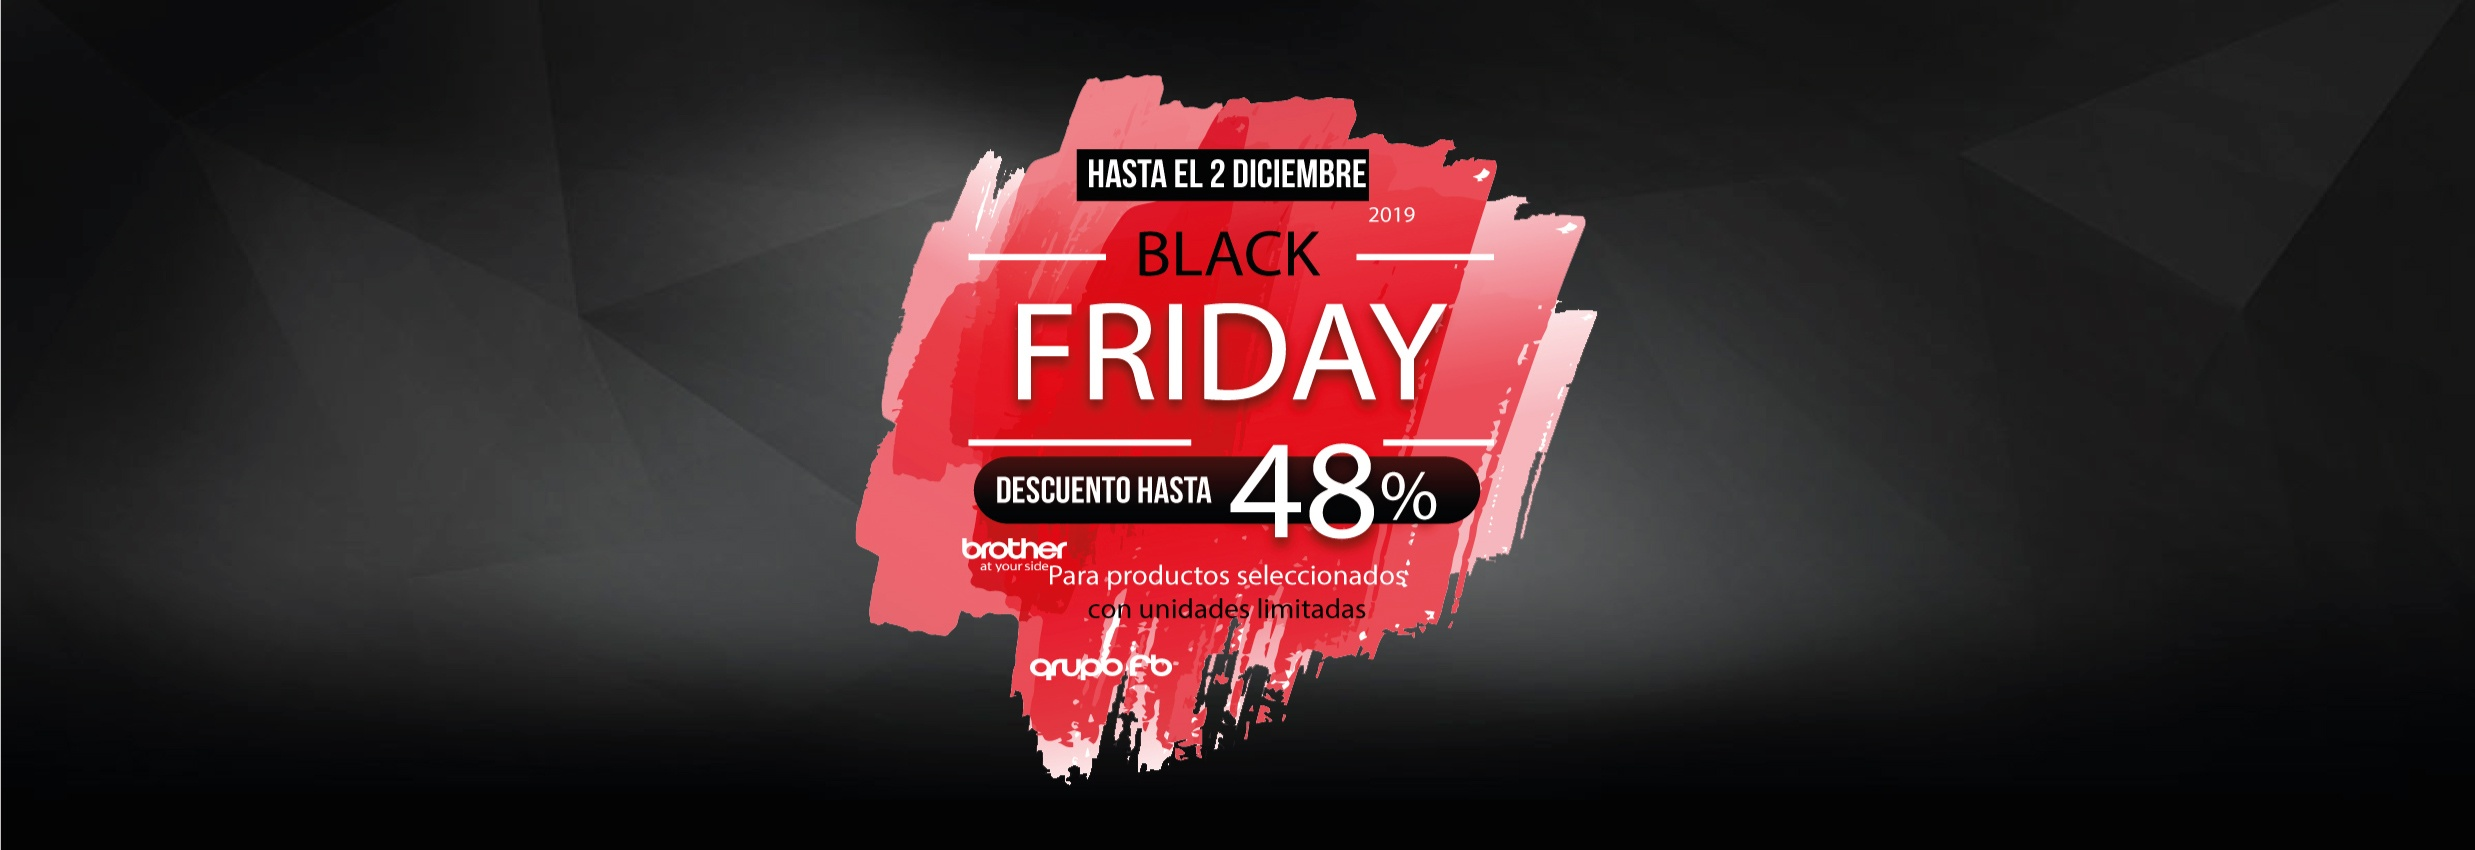 , Blackfriday 2019 Grupo FB, Grupo FB, Grupo FB